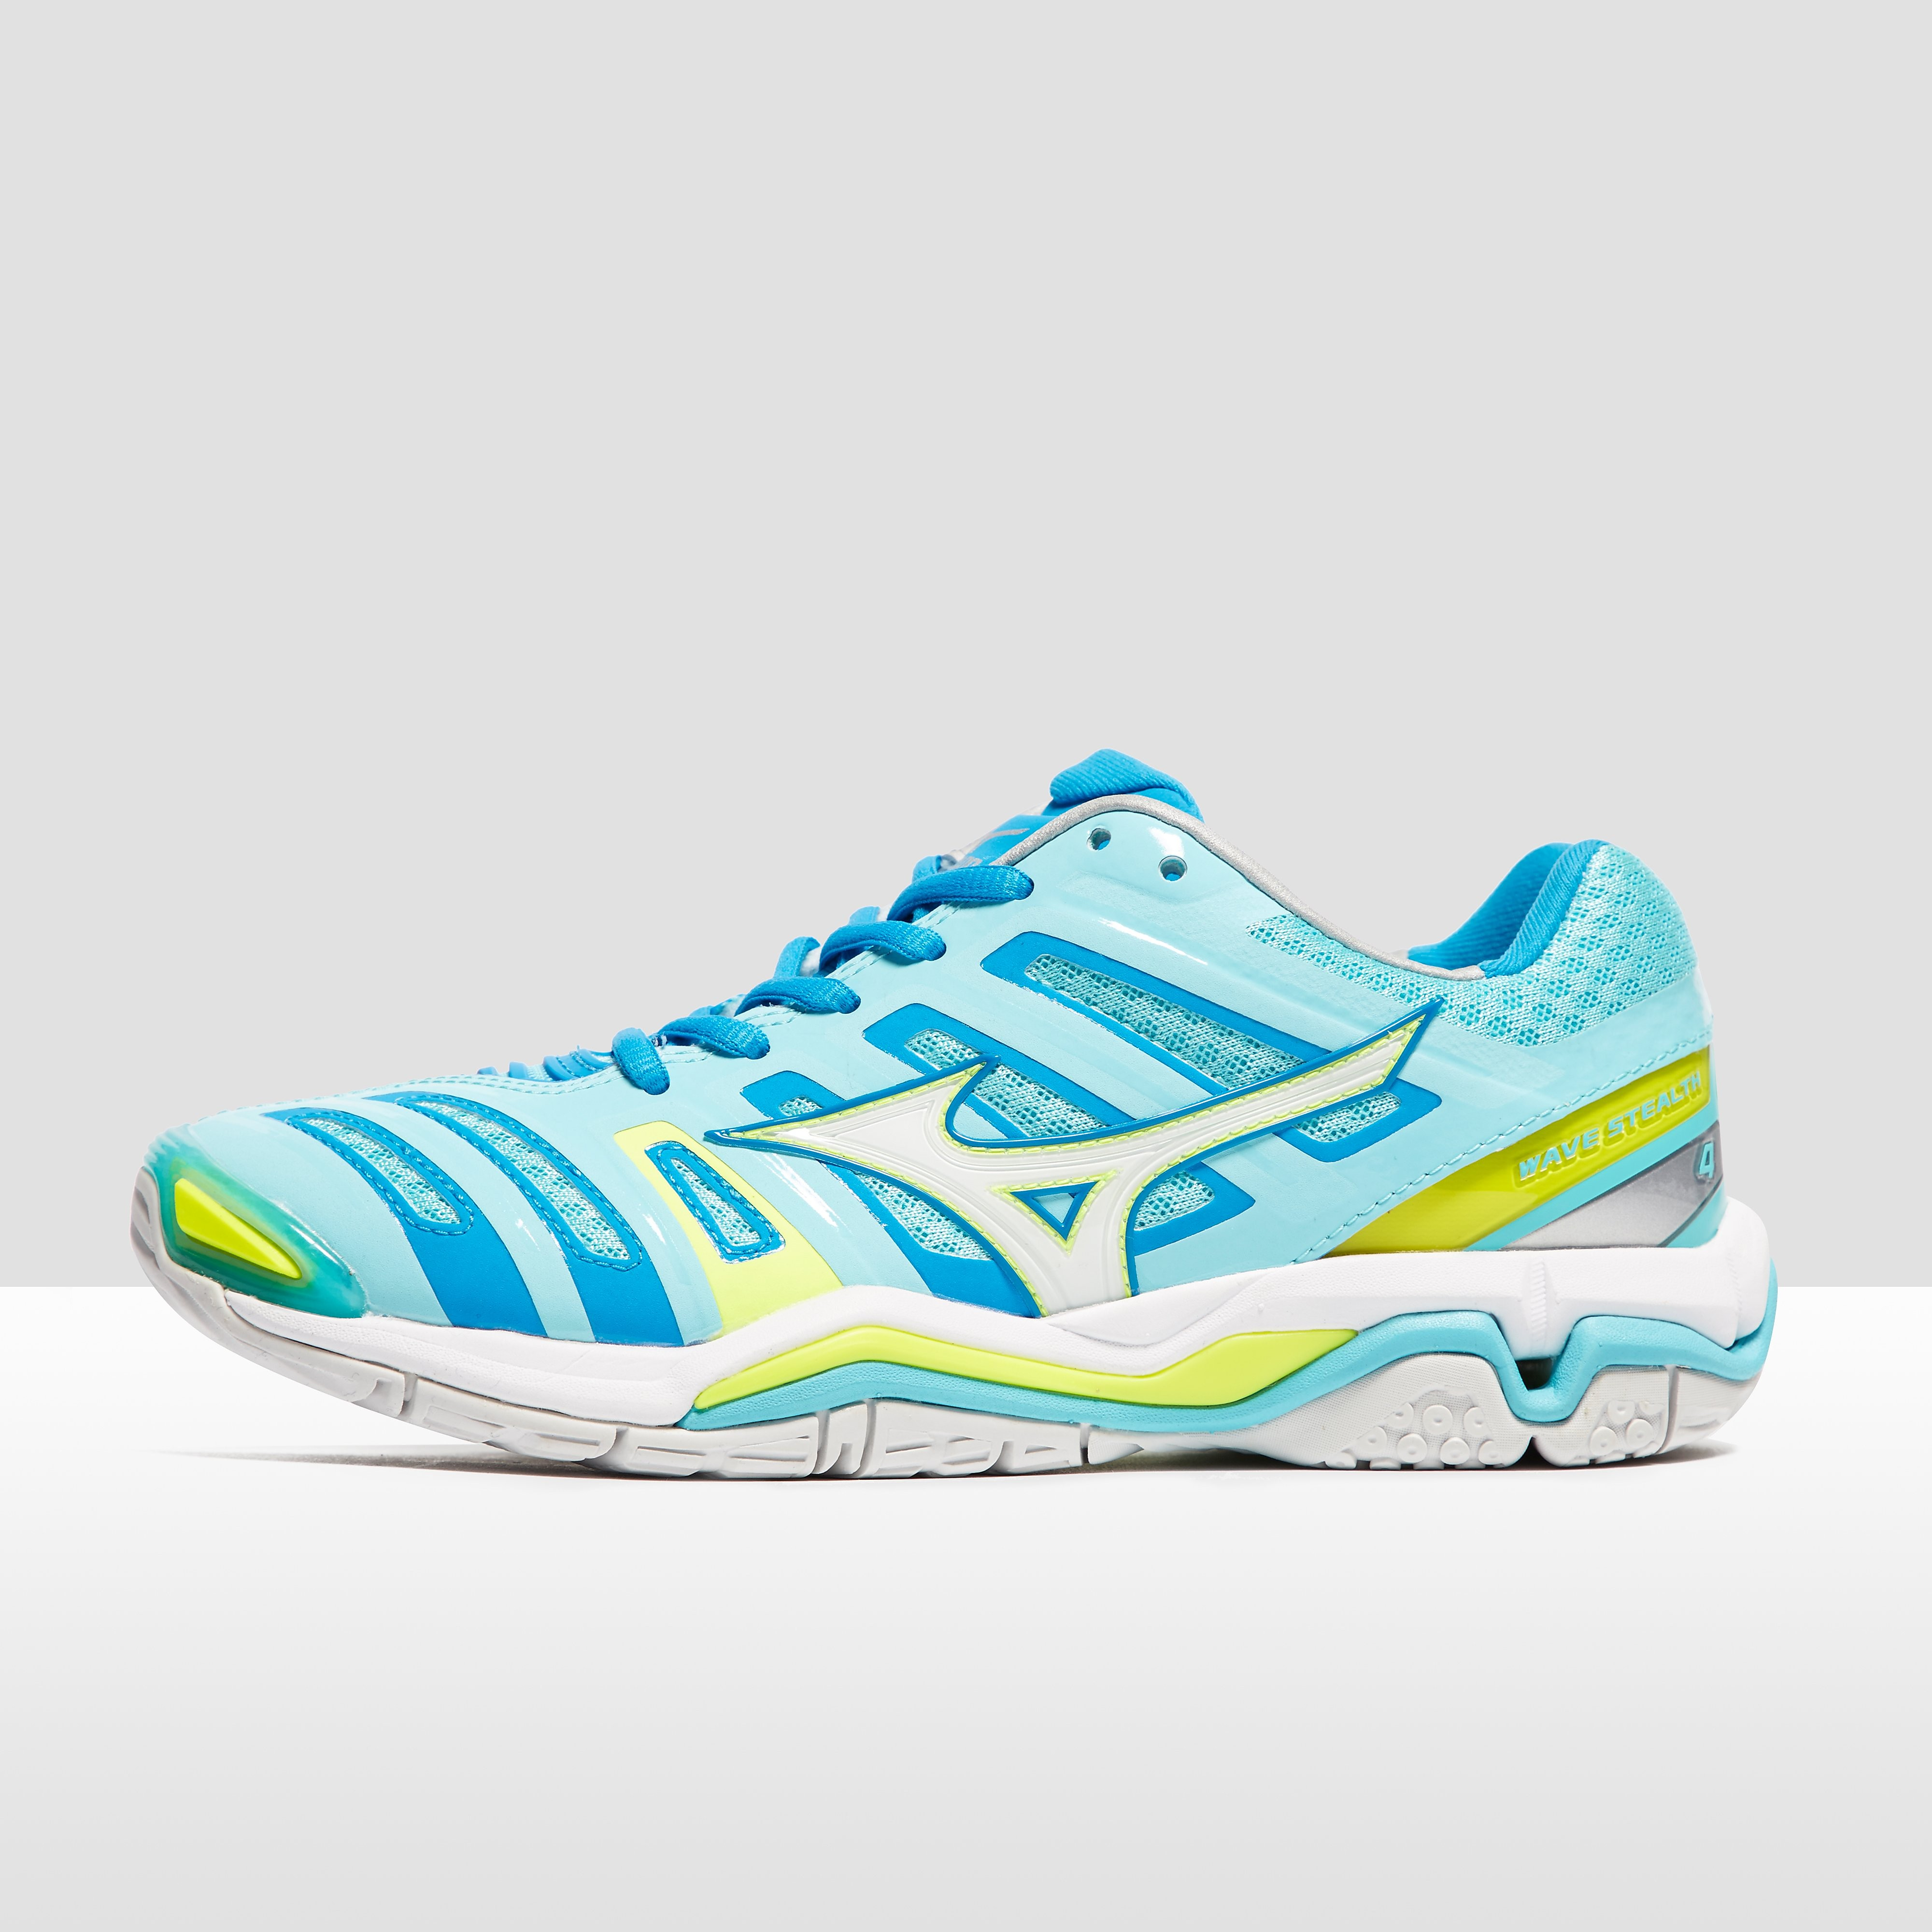 Mizuno Wave Stealth 4 Women's Running Shoes